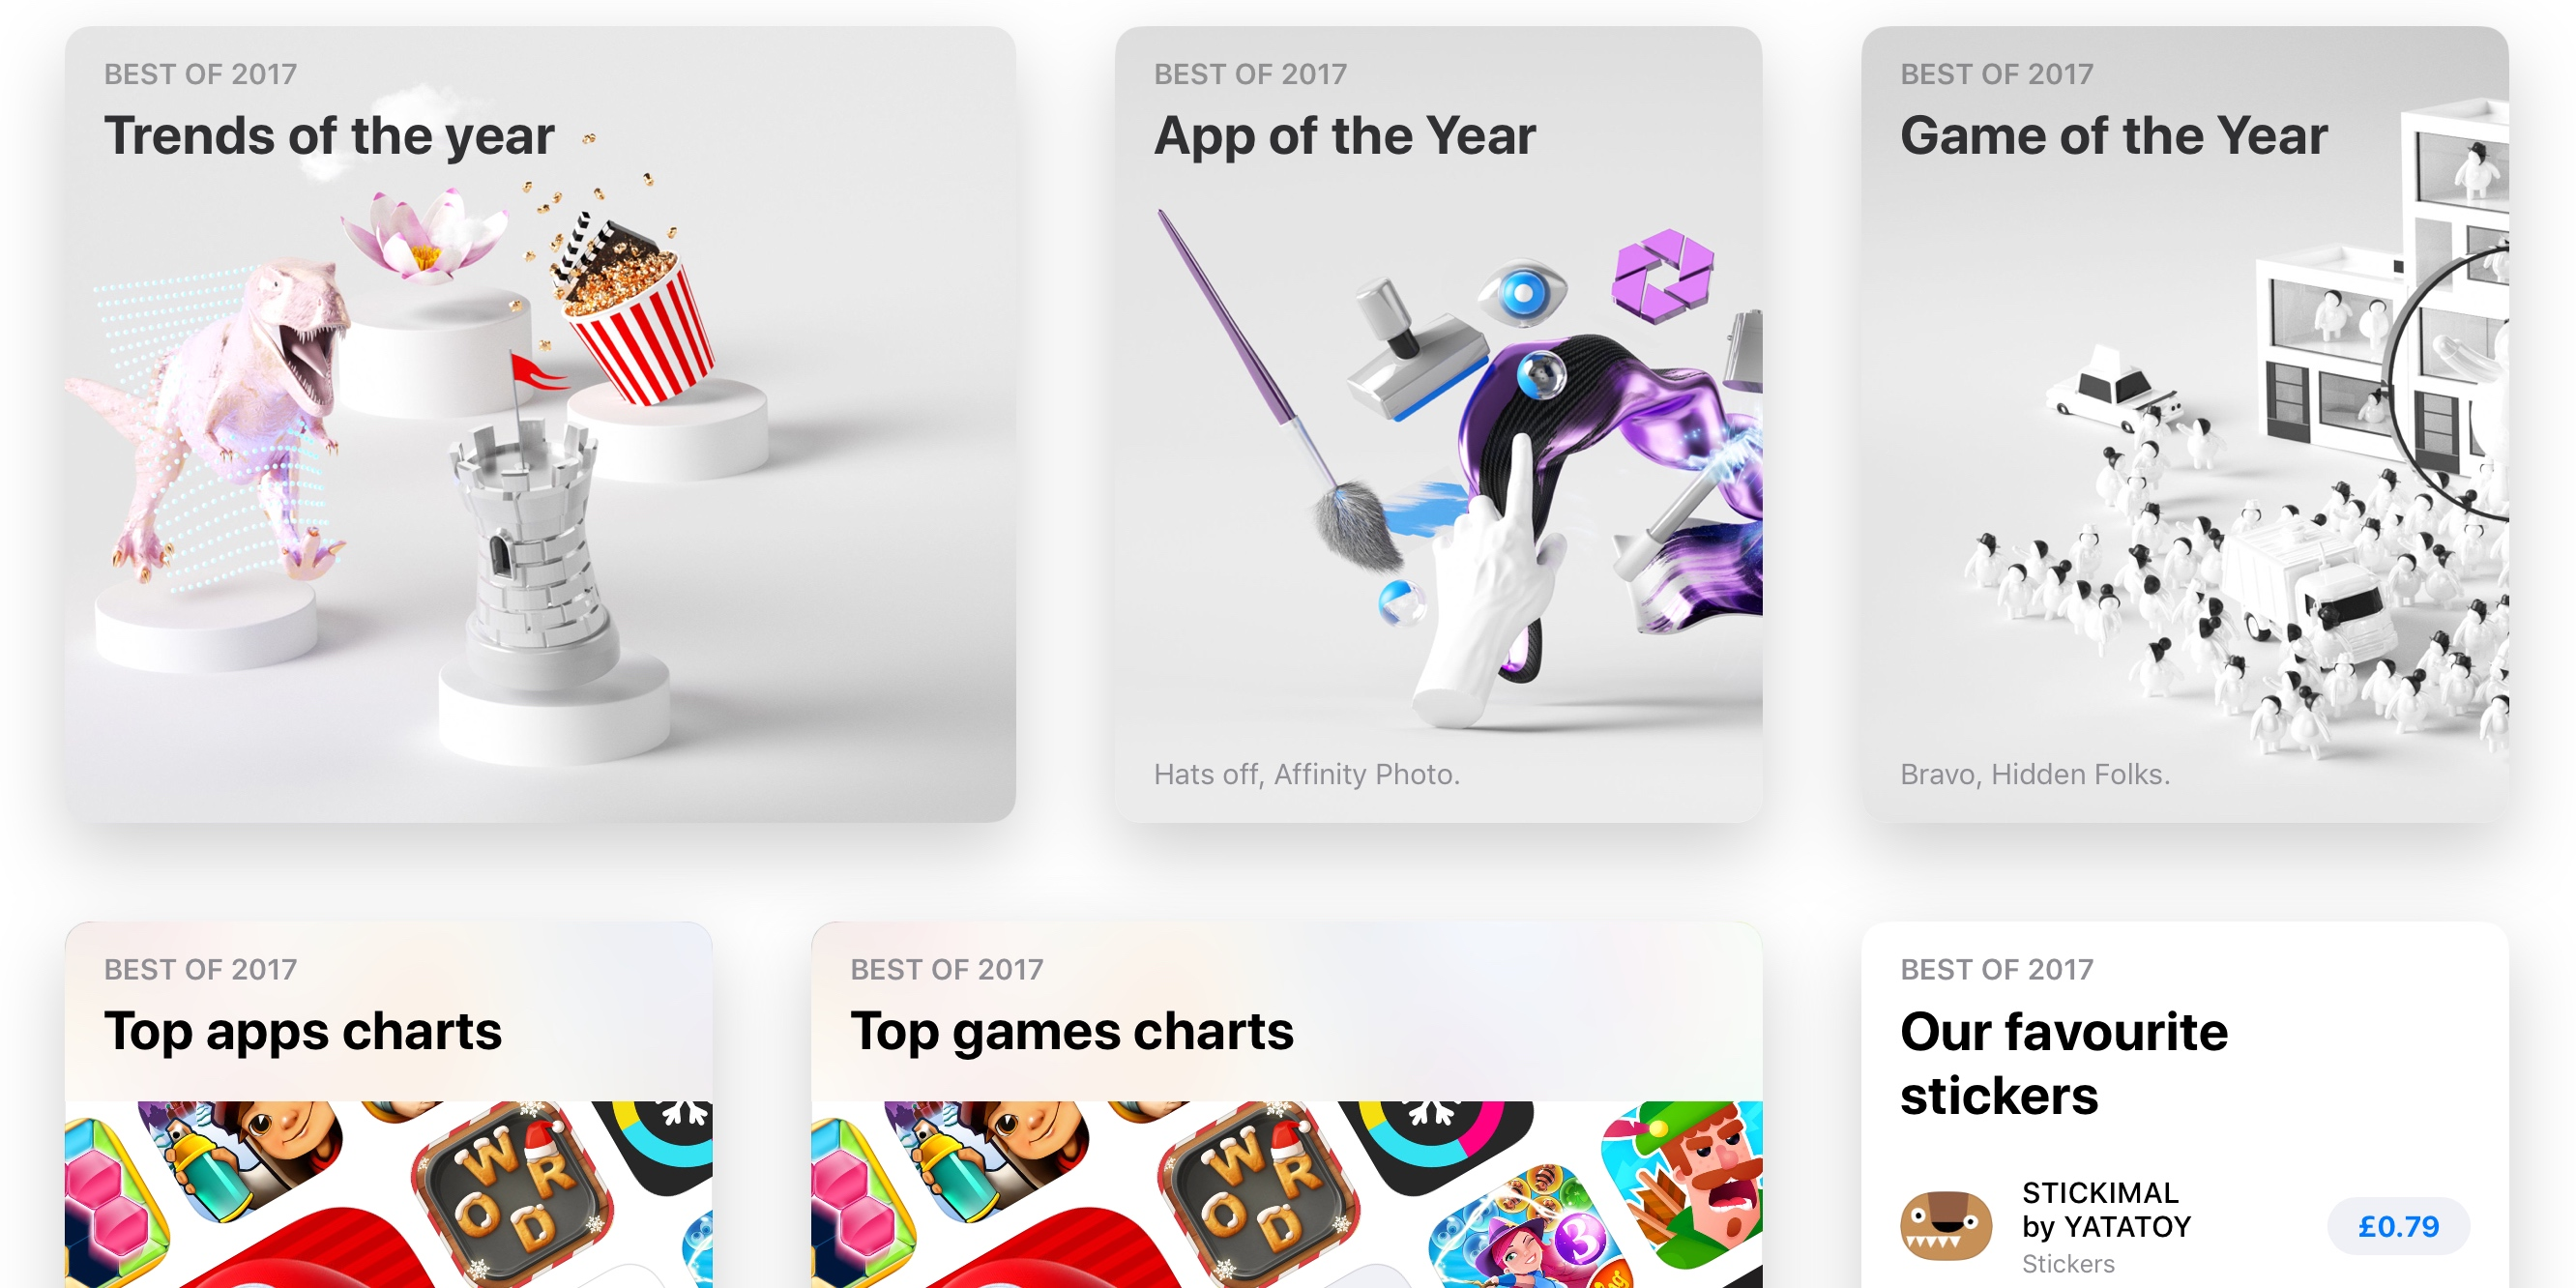 Apple announces App of the Year, Game of the Year, and Best of 2017 top charts